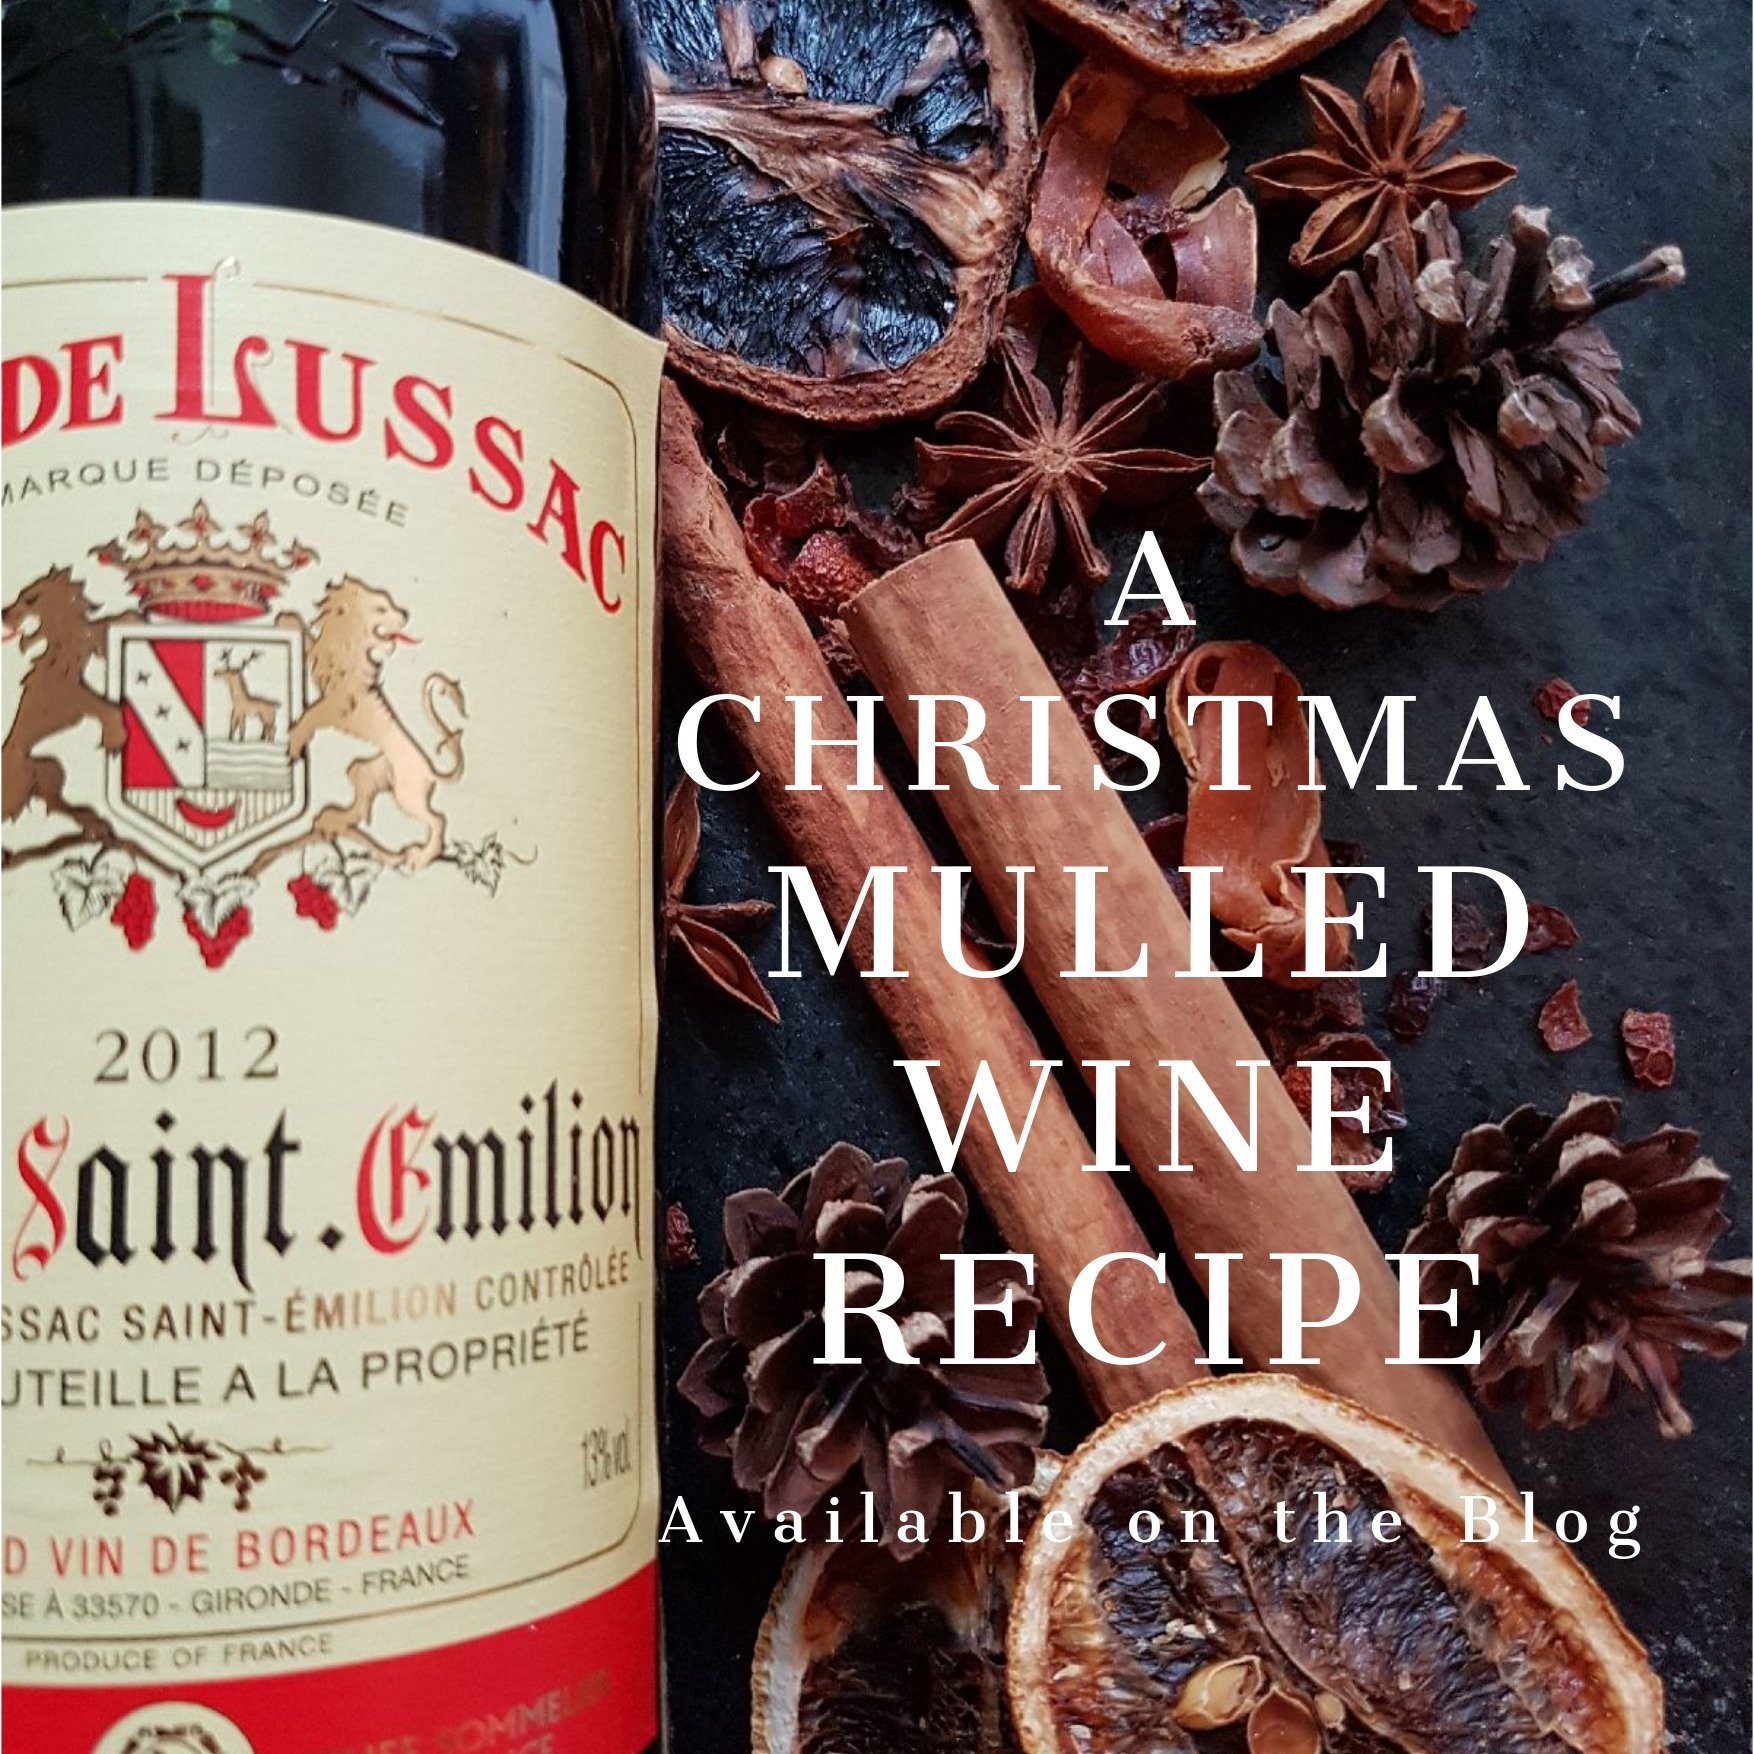 Recipe for Christmas Mulled Wine